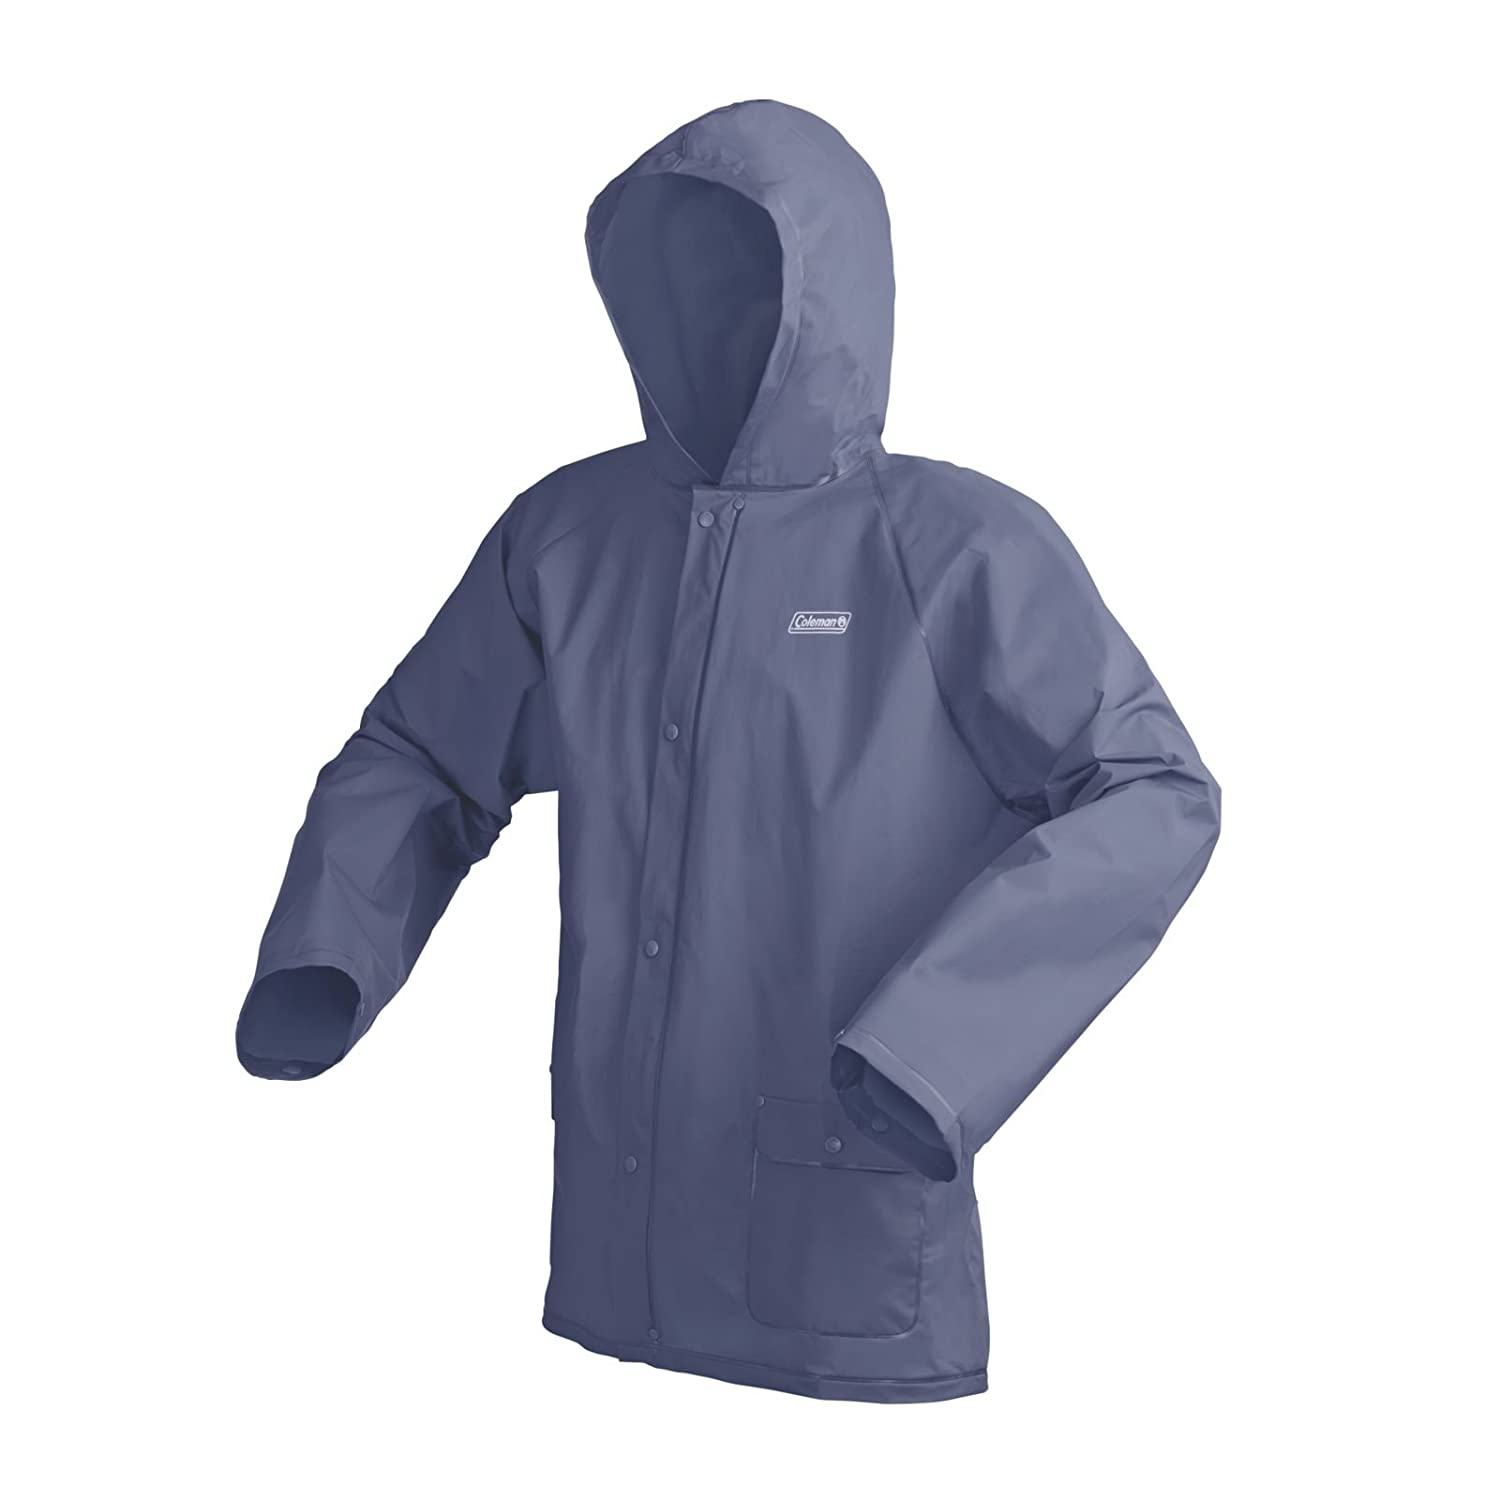 Coleman .15 mm EVA Adult Jacket, Large/X-Large, Blue The Coleman Company Inc. 2000020164